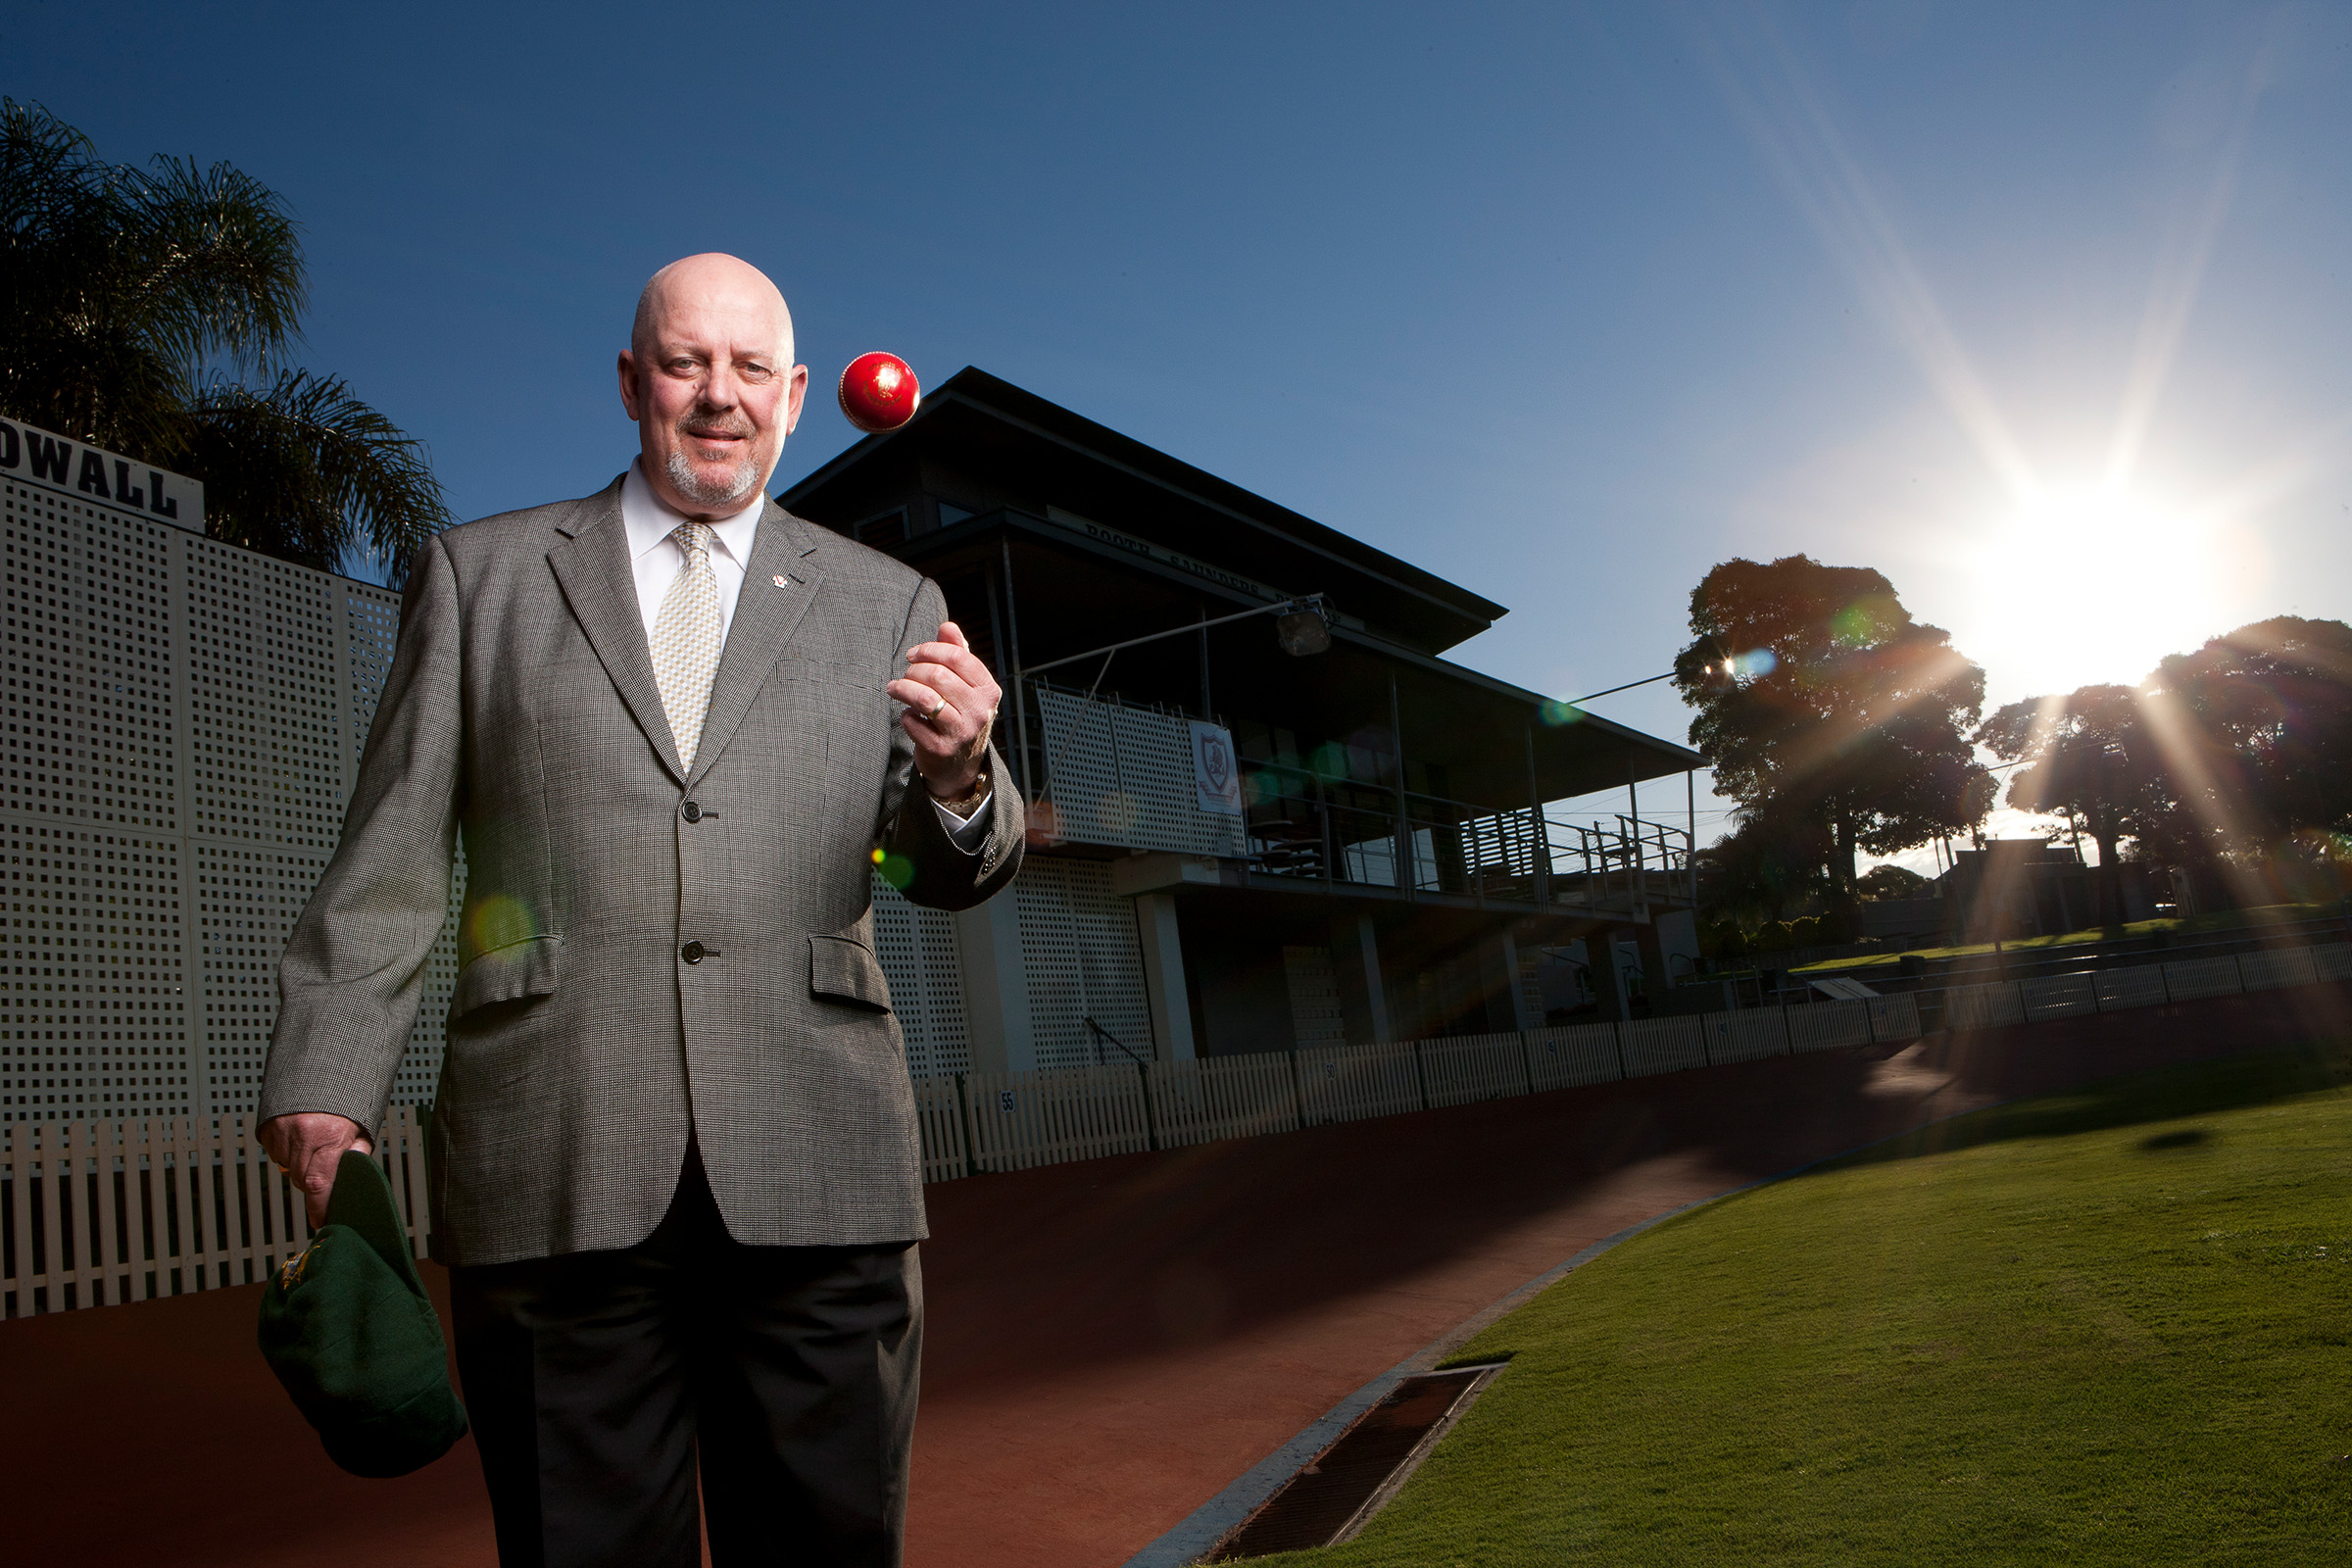 Location editorial environmental photography or Murray Bennett tossing cricket ball and holding baggy green